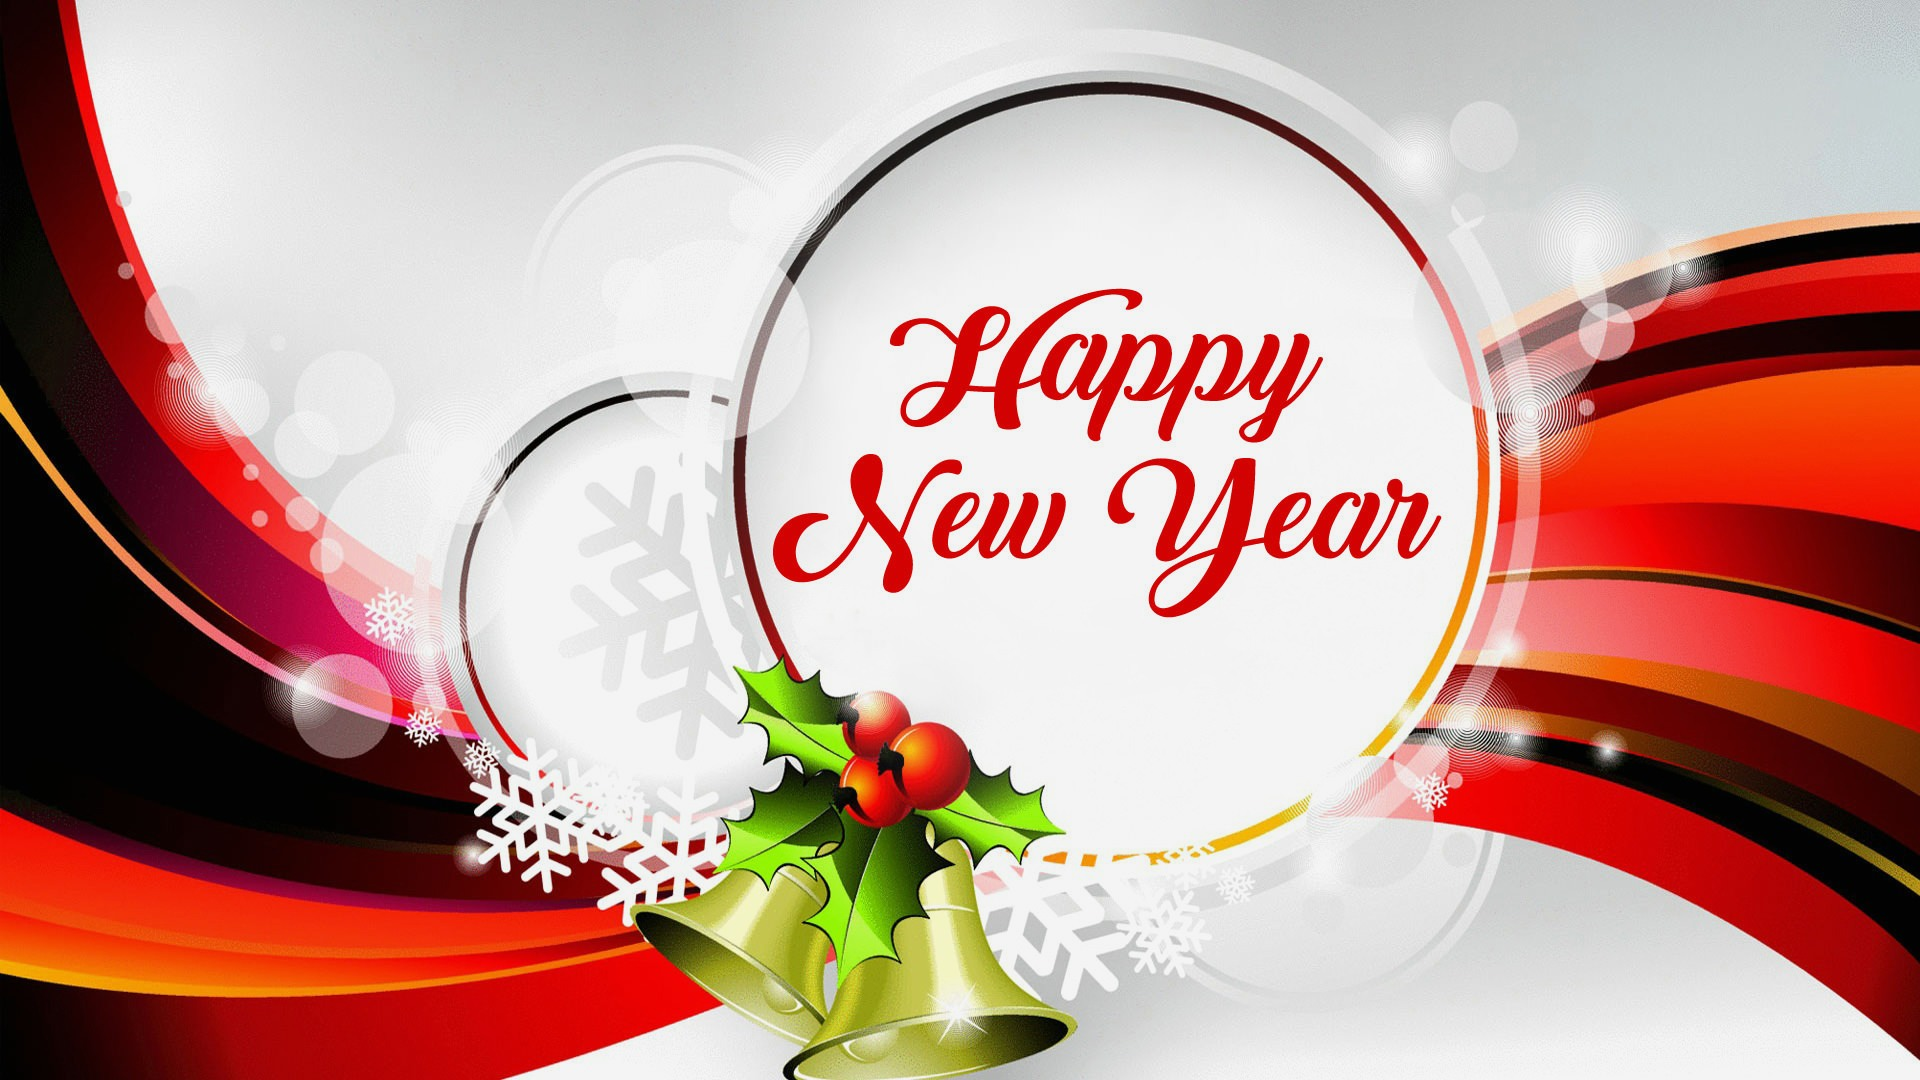 Special Happy New Year 2018 Wallpaper Hd Greetings - New Year Background Designs - HD Wallpaper